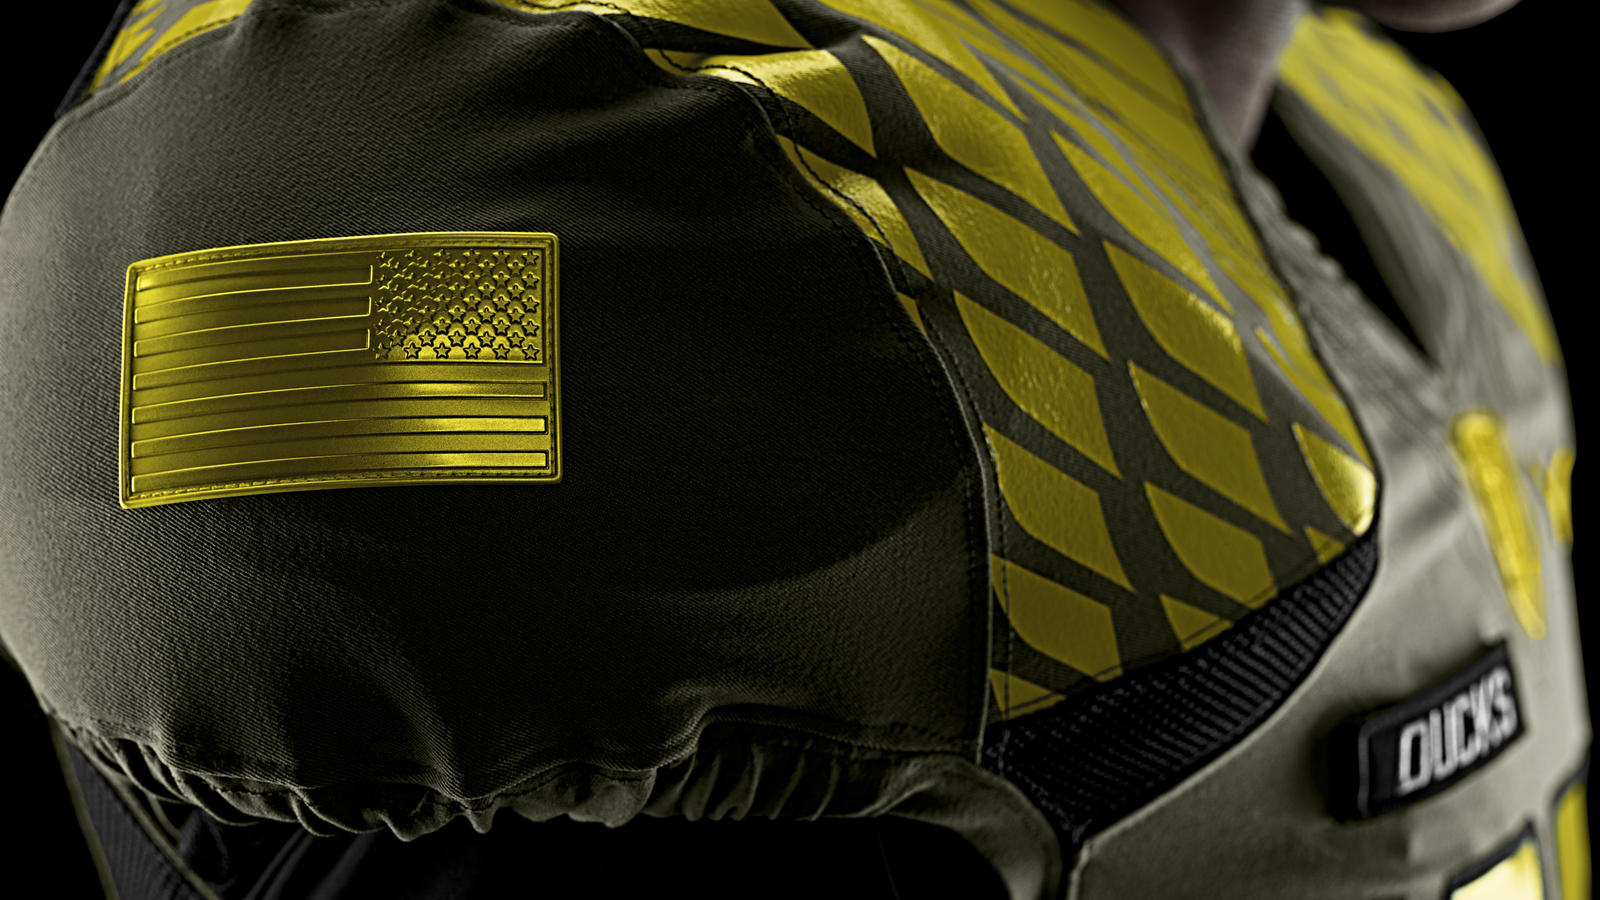 nike-football-uniform-uofo-away-flag